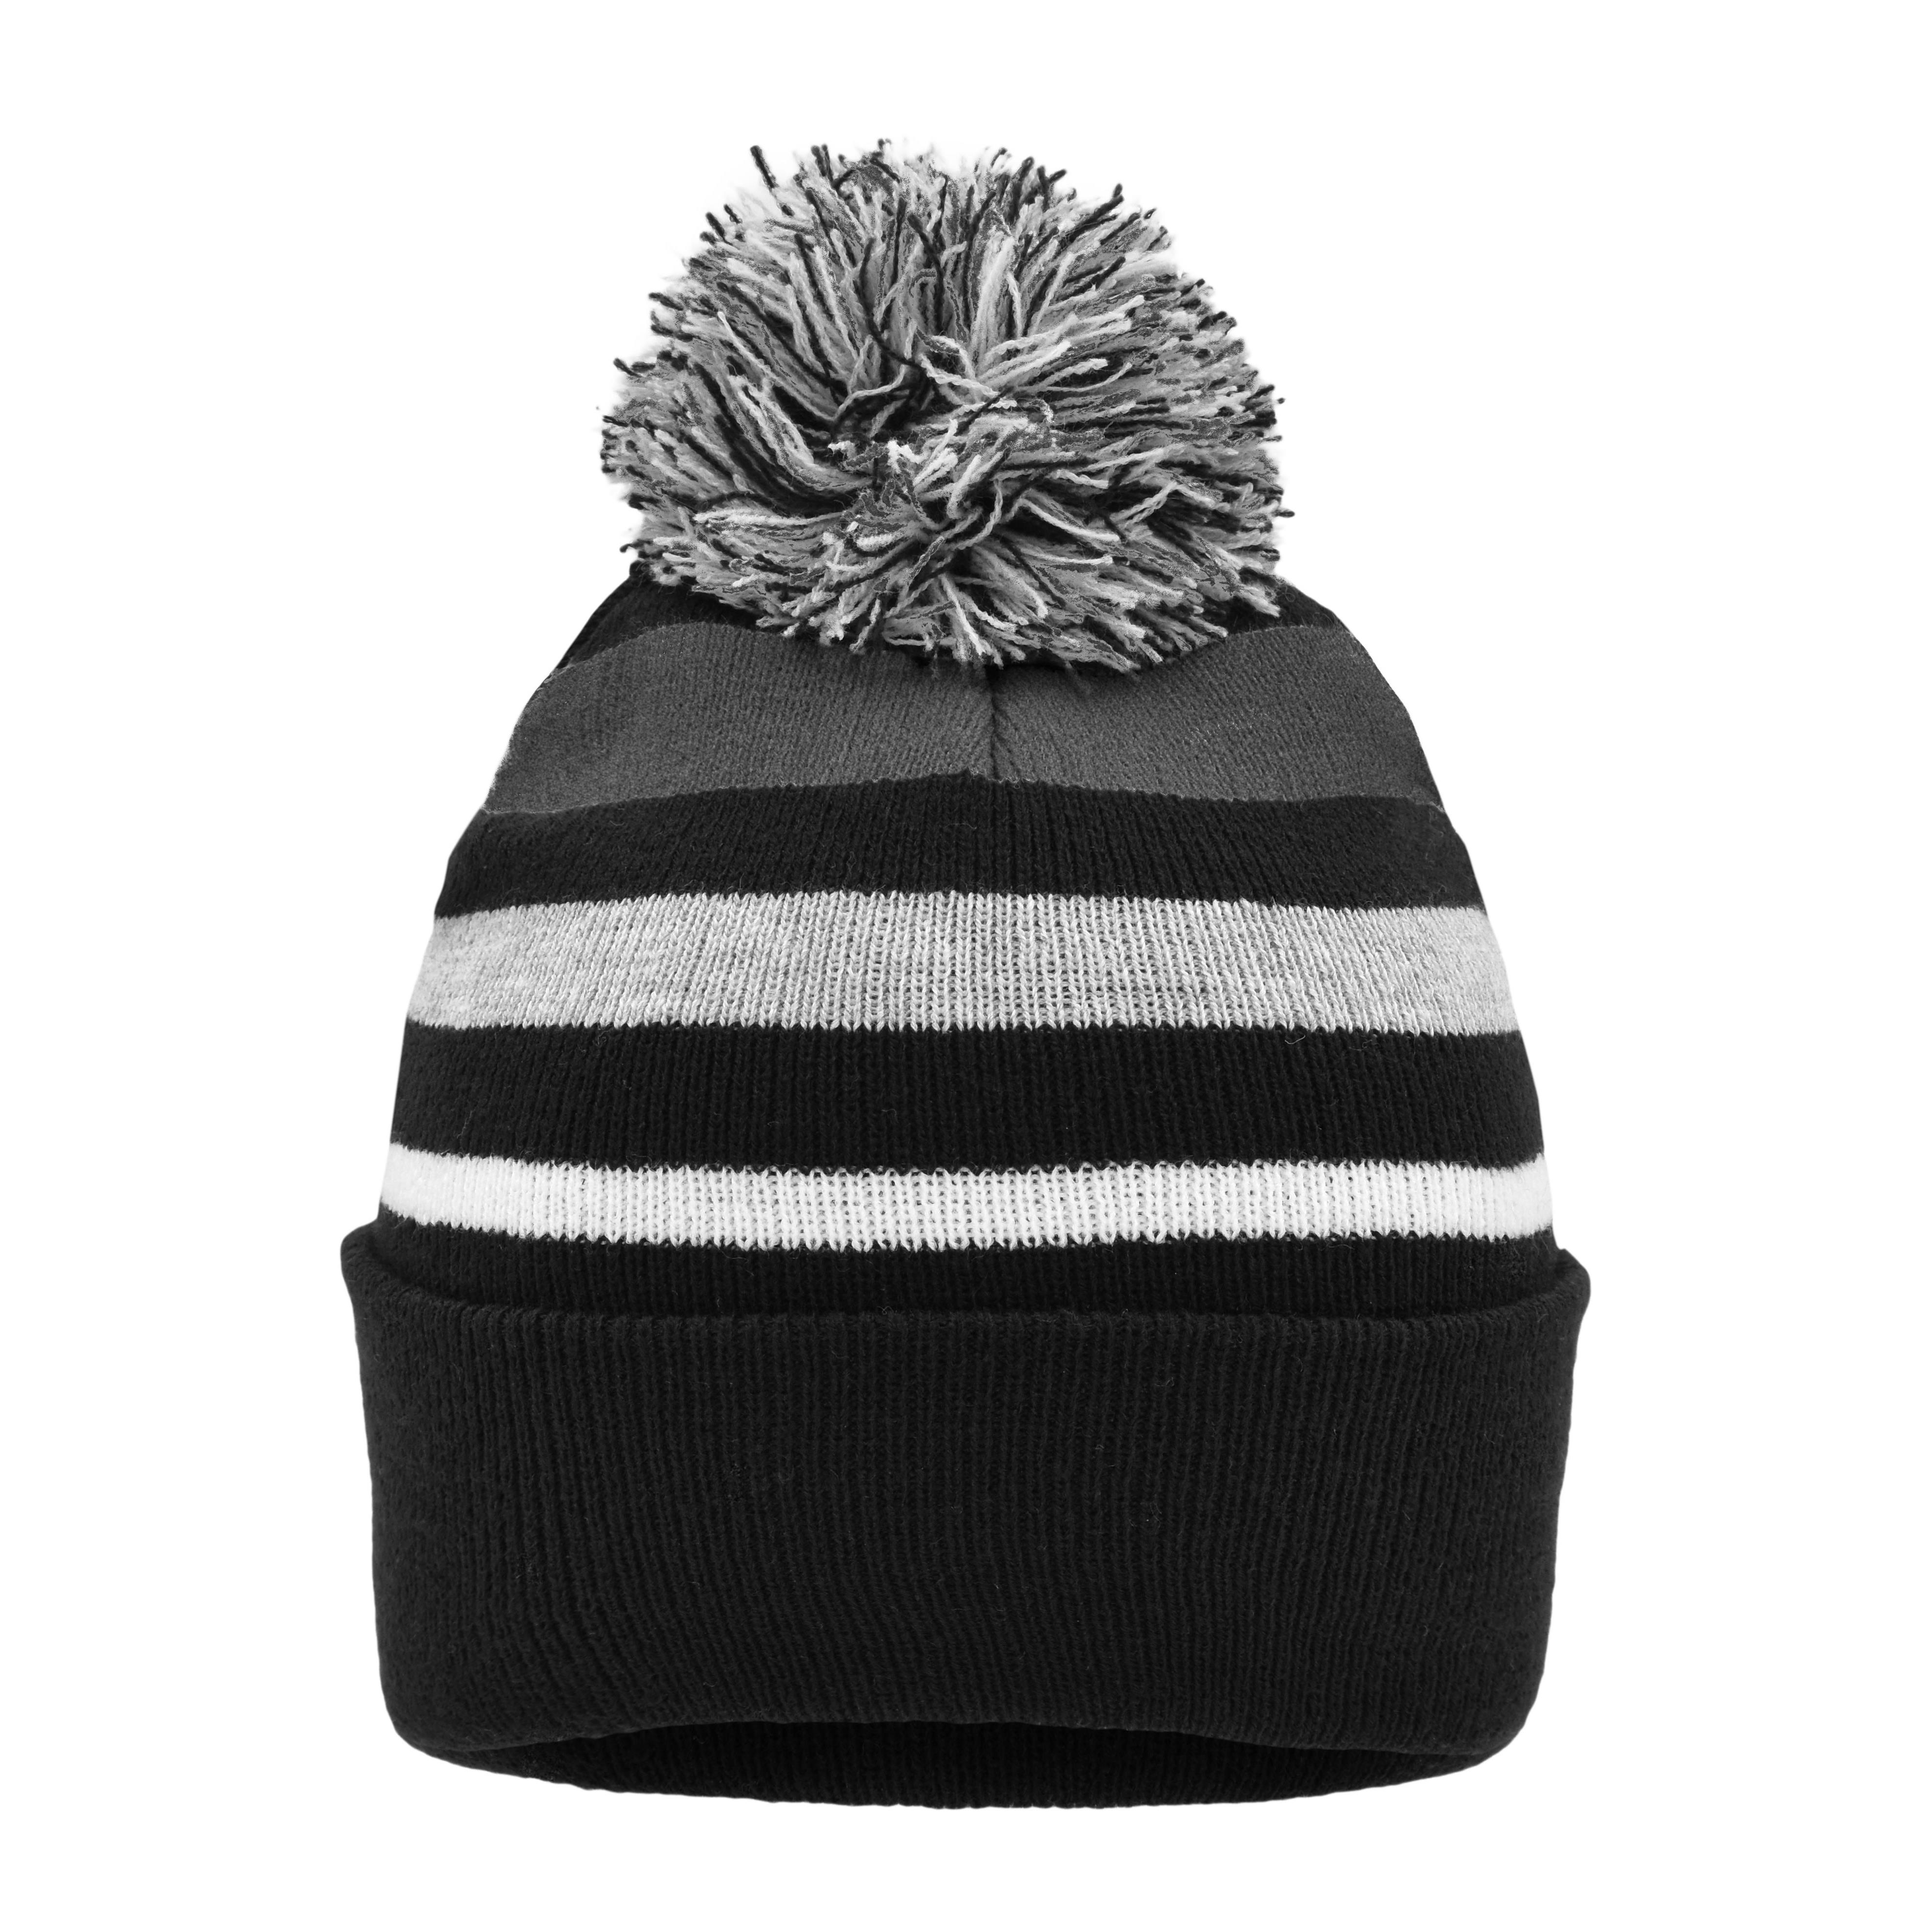 Striped Winter Beanie with Pompon